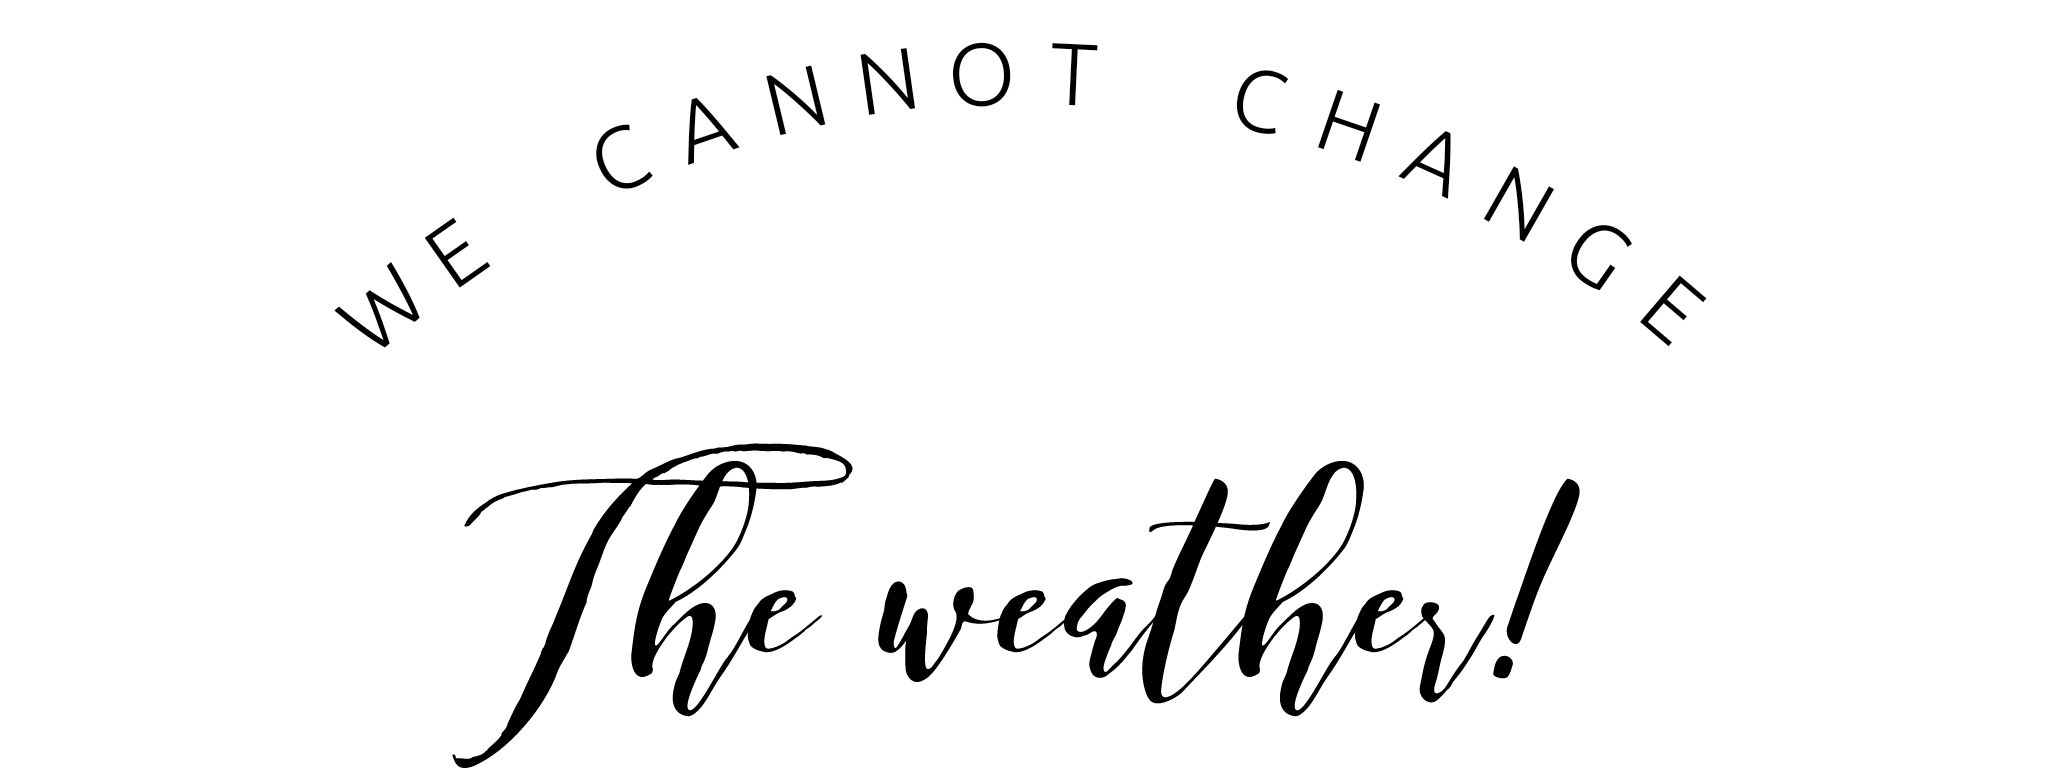 Never mind the weather